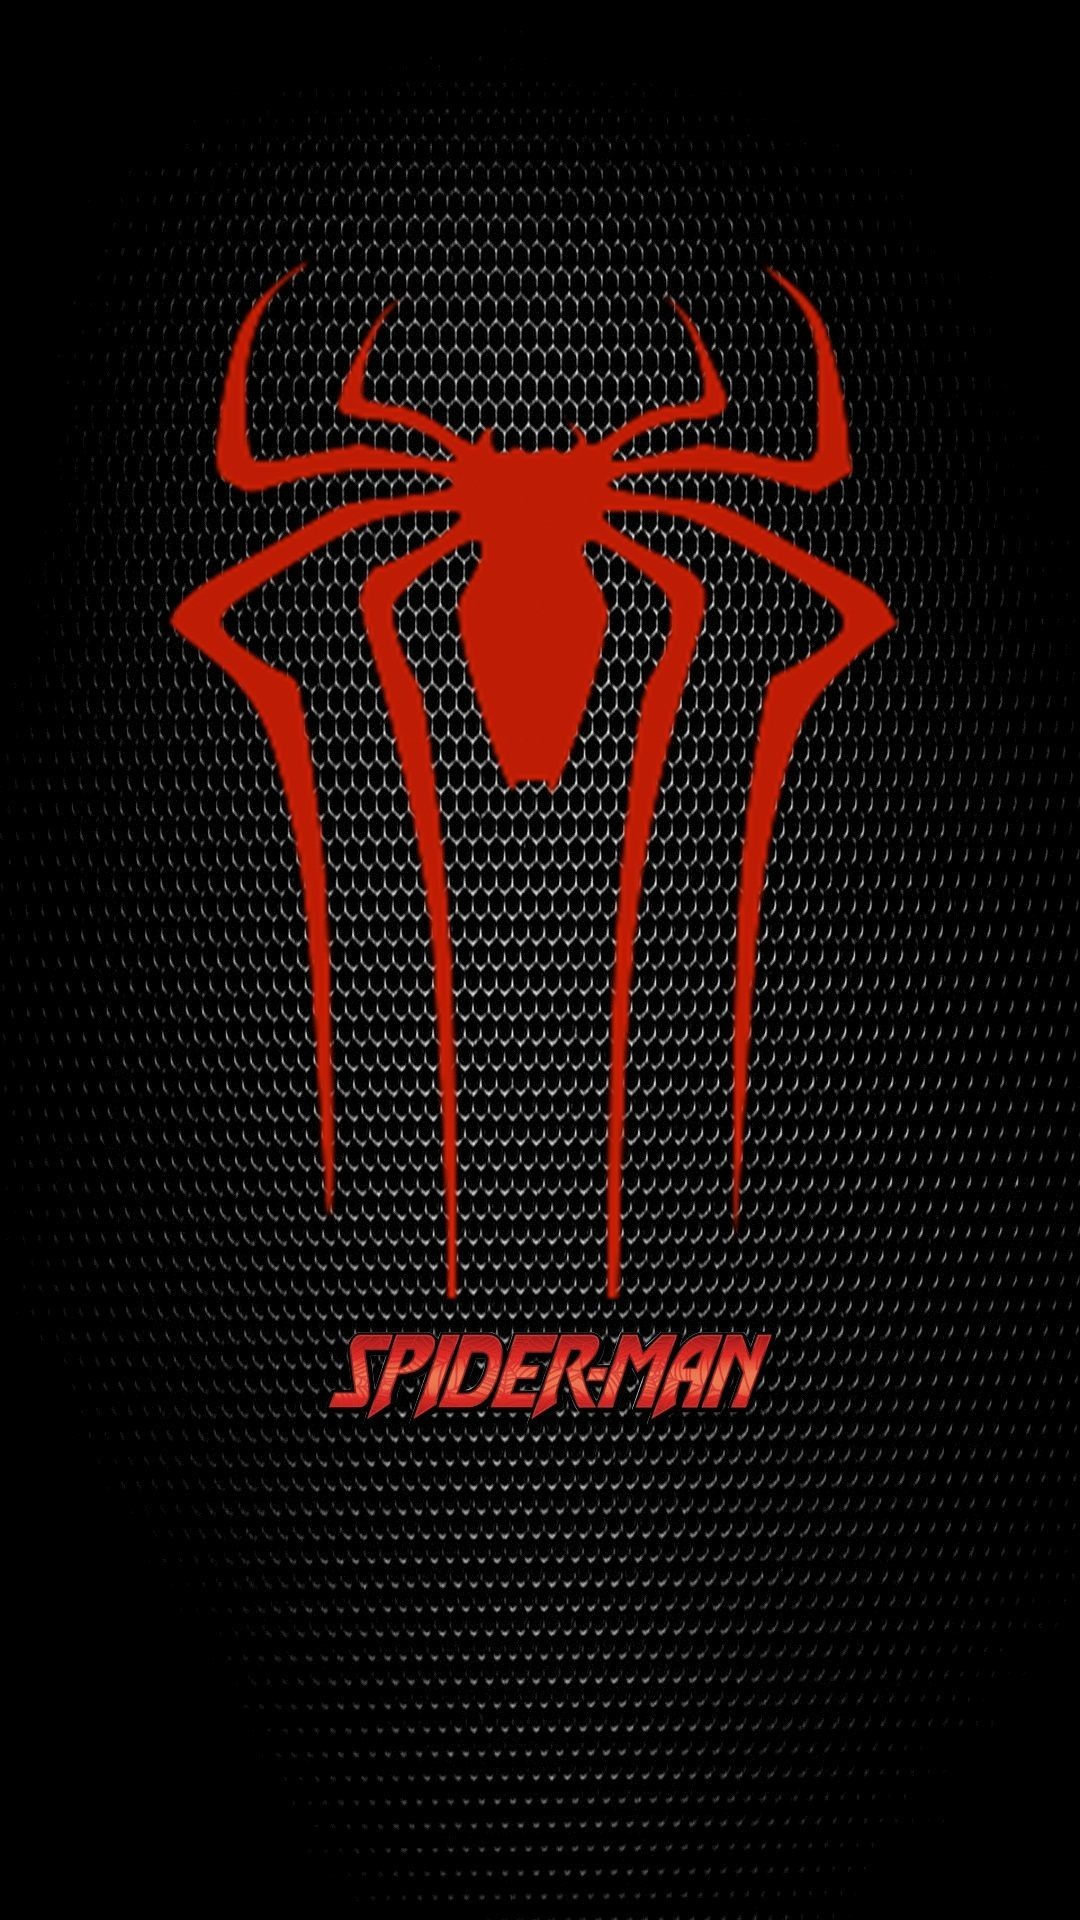 1080x1920 Spiderman Wallpaper 42 Wallpaper Background Hd | Movies Wallpapers |  Pinterest | Spiderman, Spiderman movie and Spider-Man